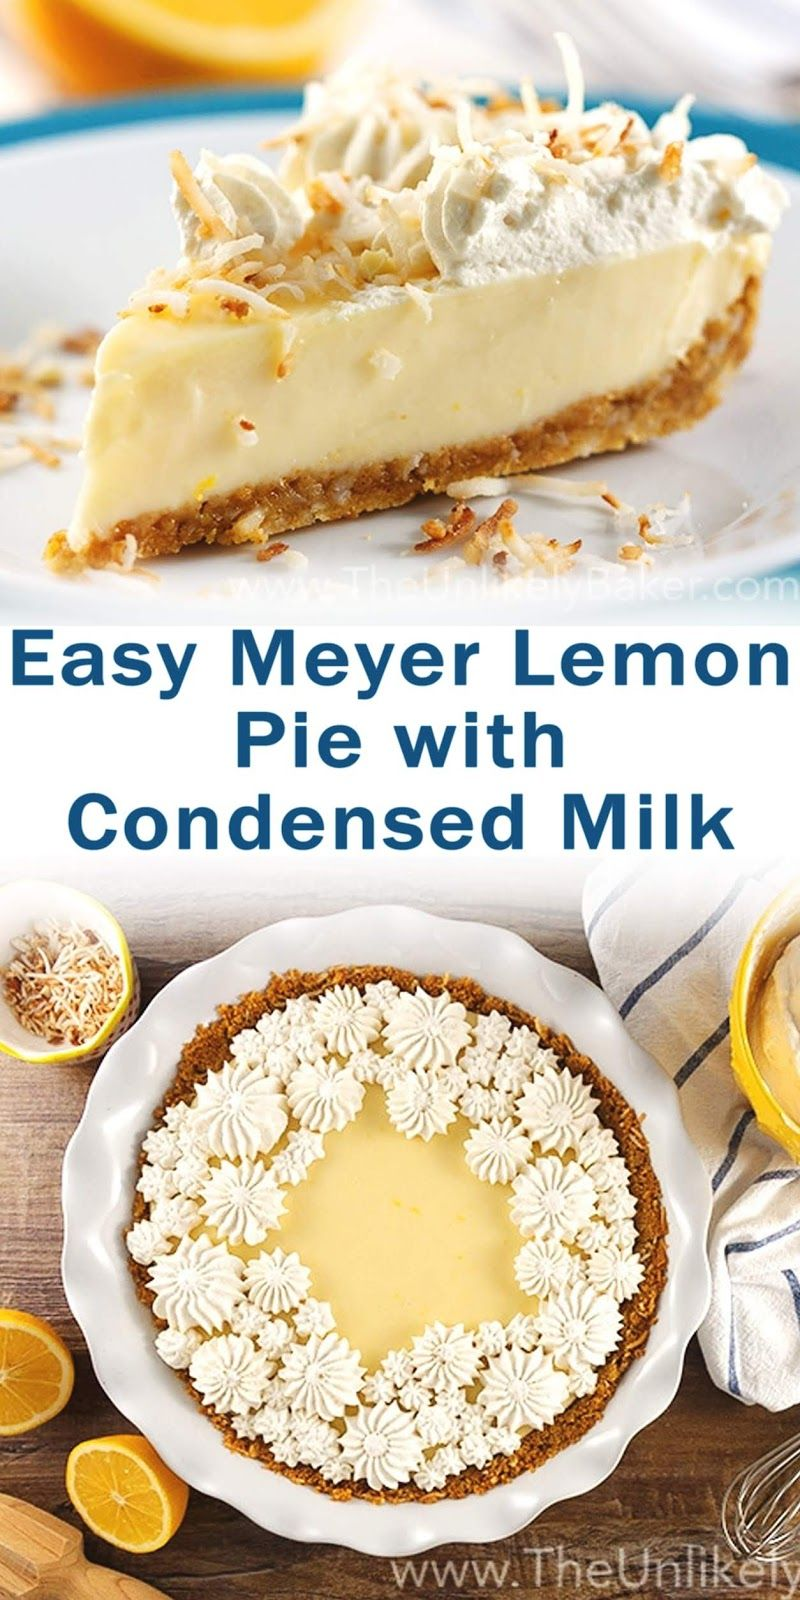 Easy Meyer Lemon Pie With Condensed Milk Bestrecipe005 In 2020 Lemon Desserts Lemon Pie Best Dessert Recipes